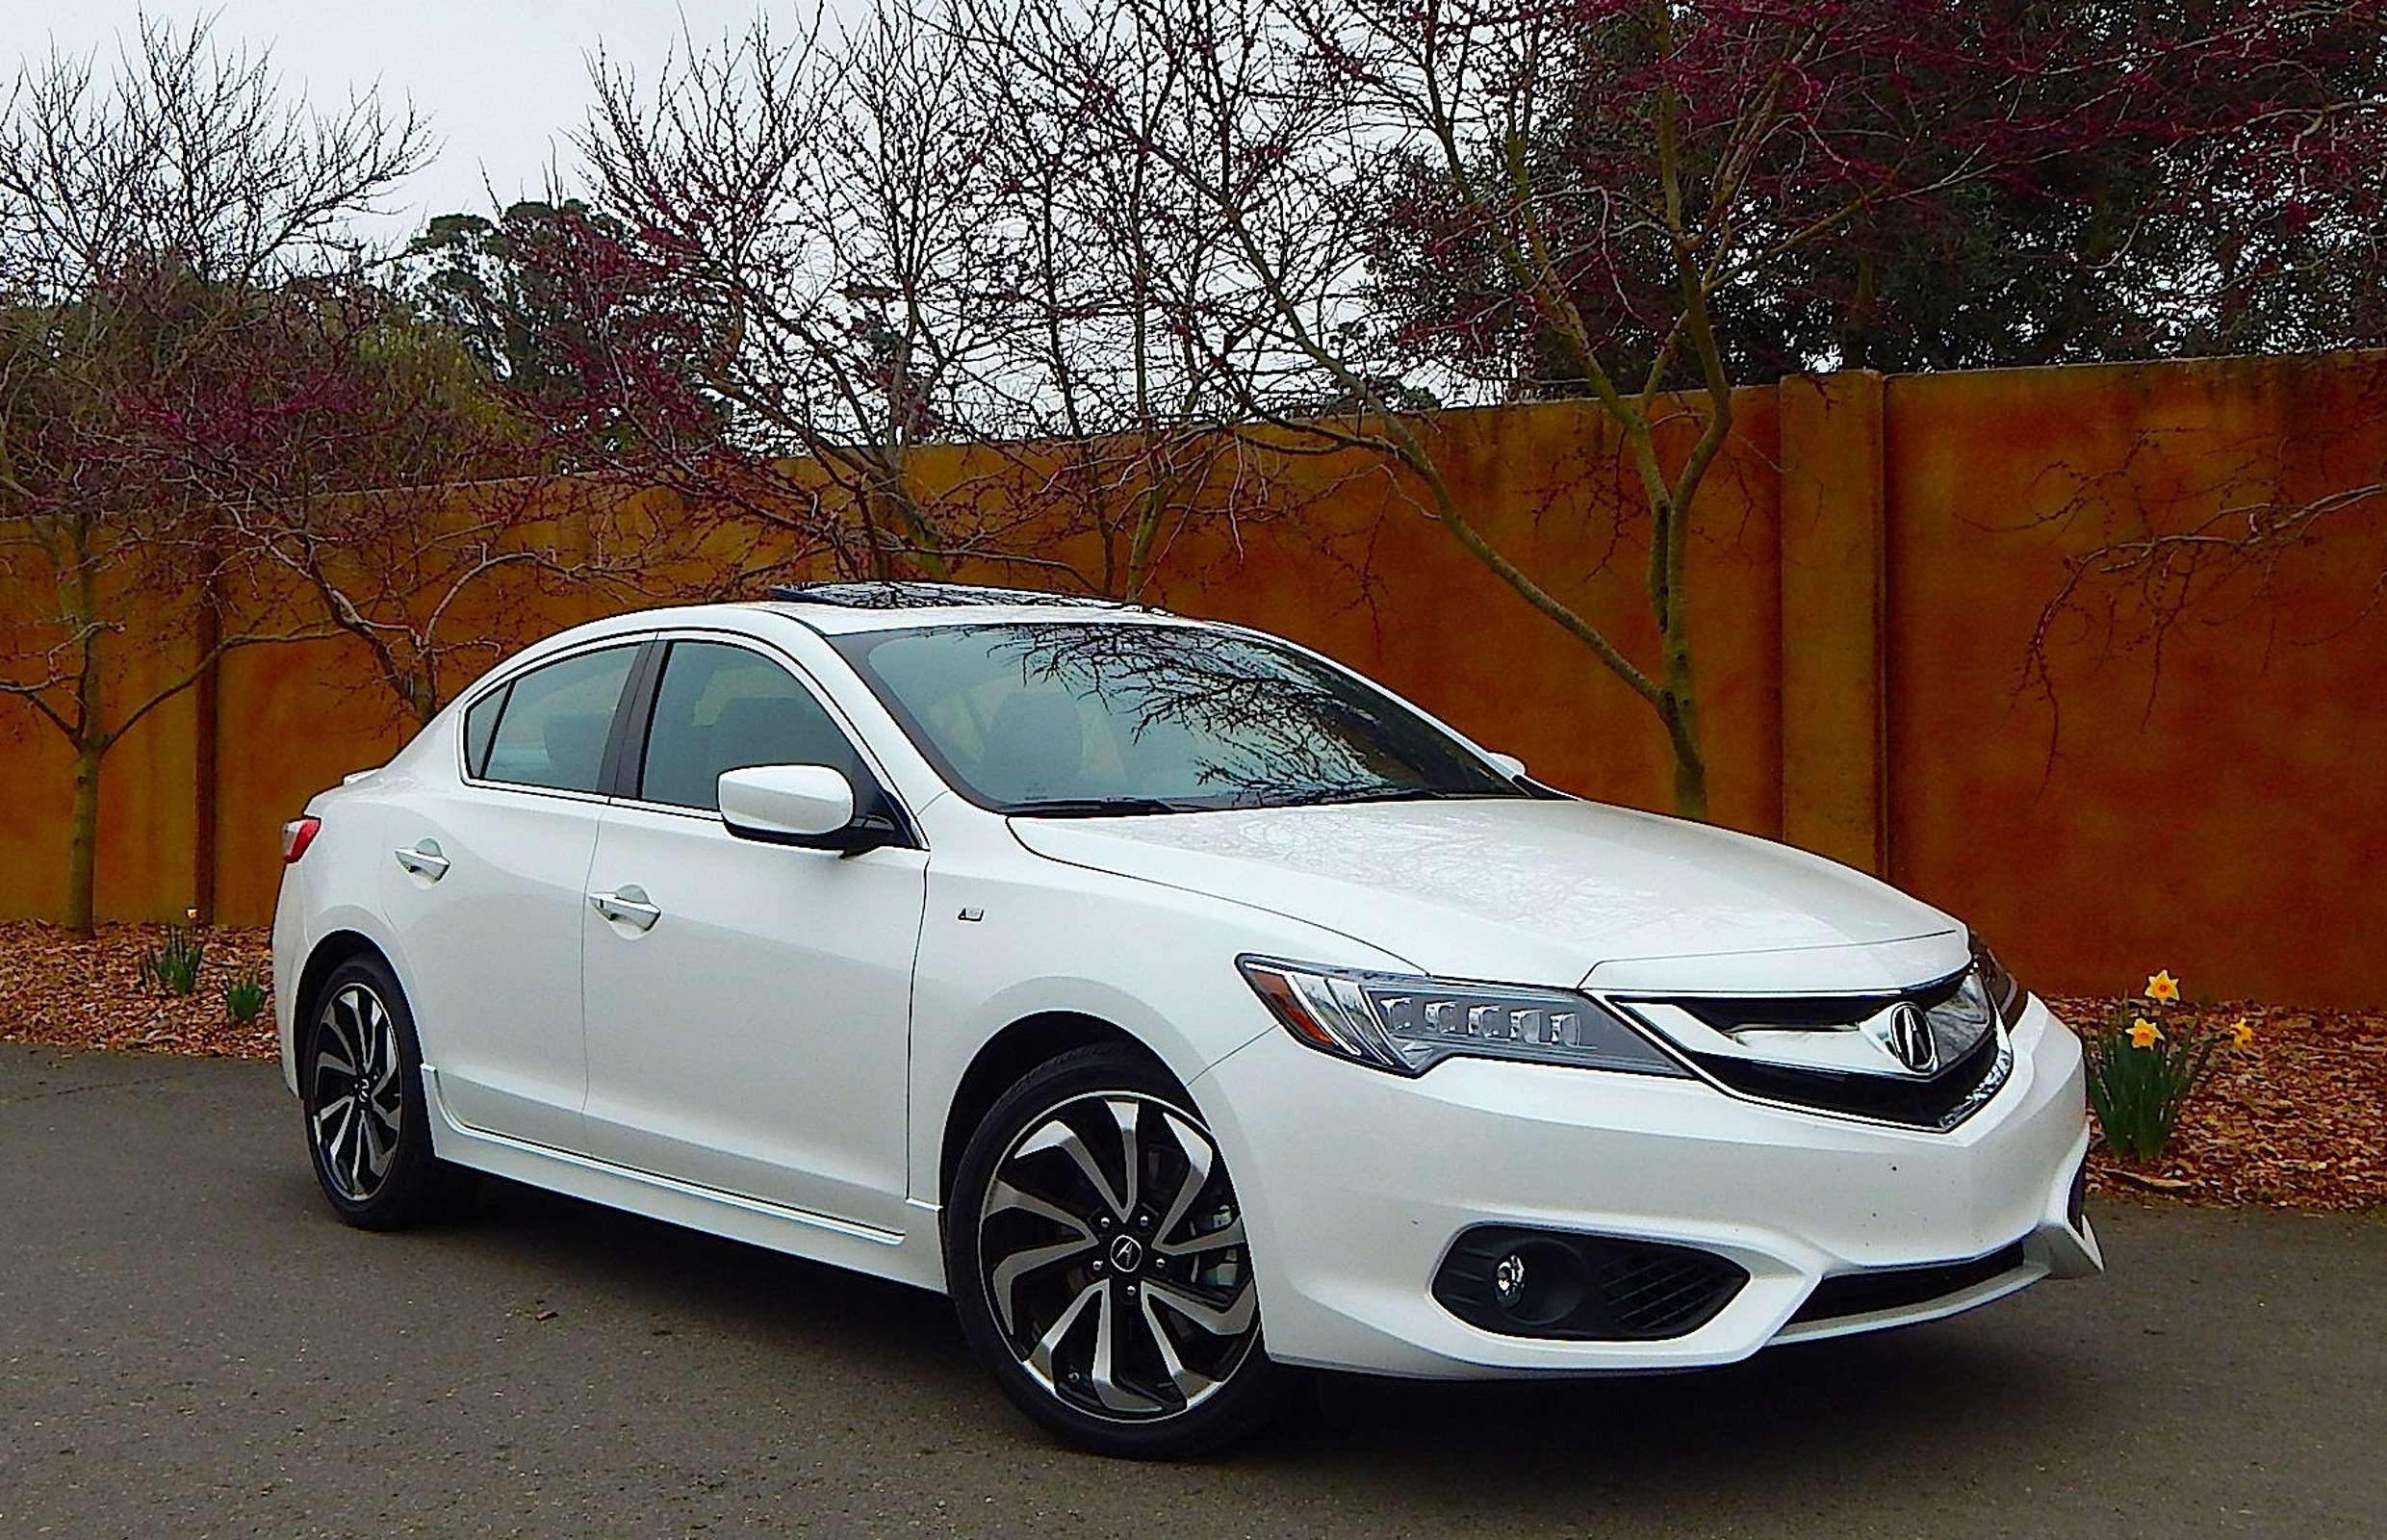 reviews notes car most civic a ilx article photo autoweek minded review acura